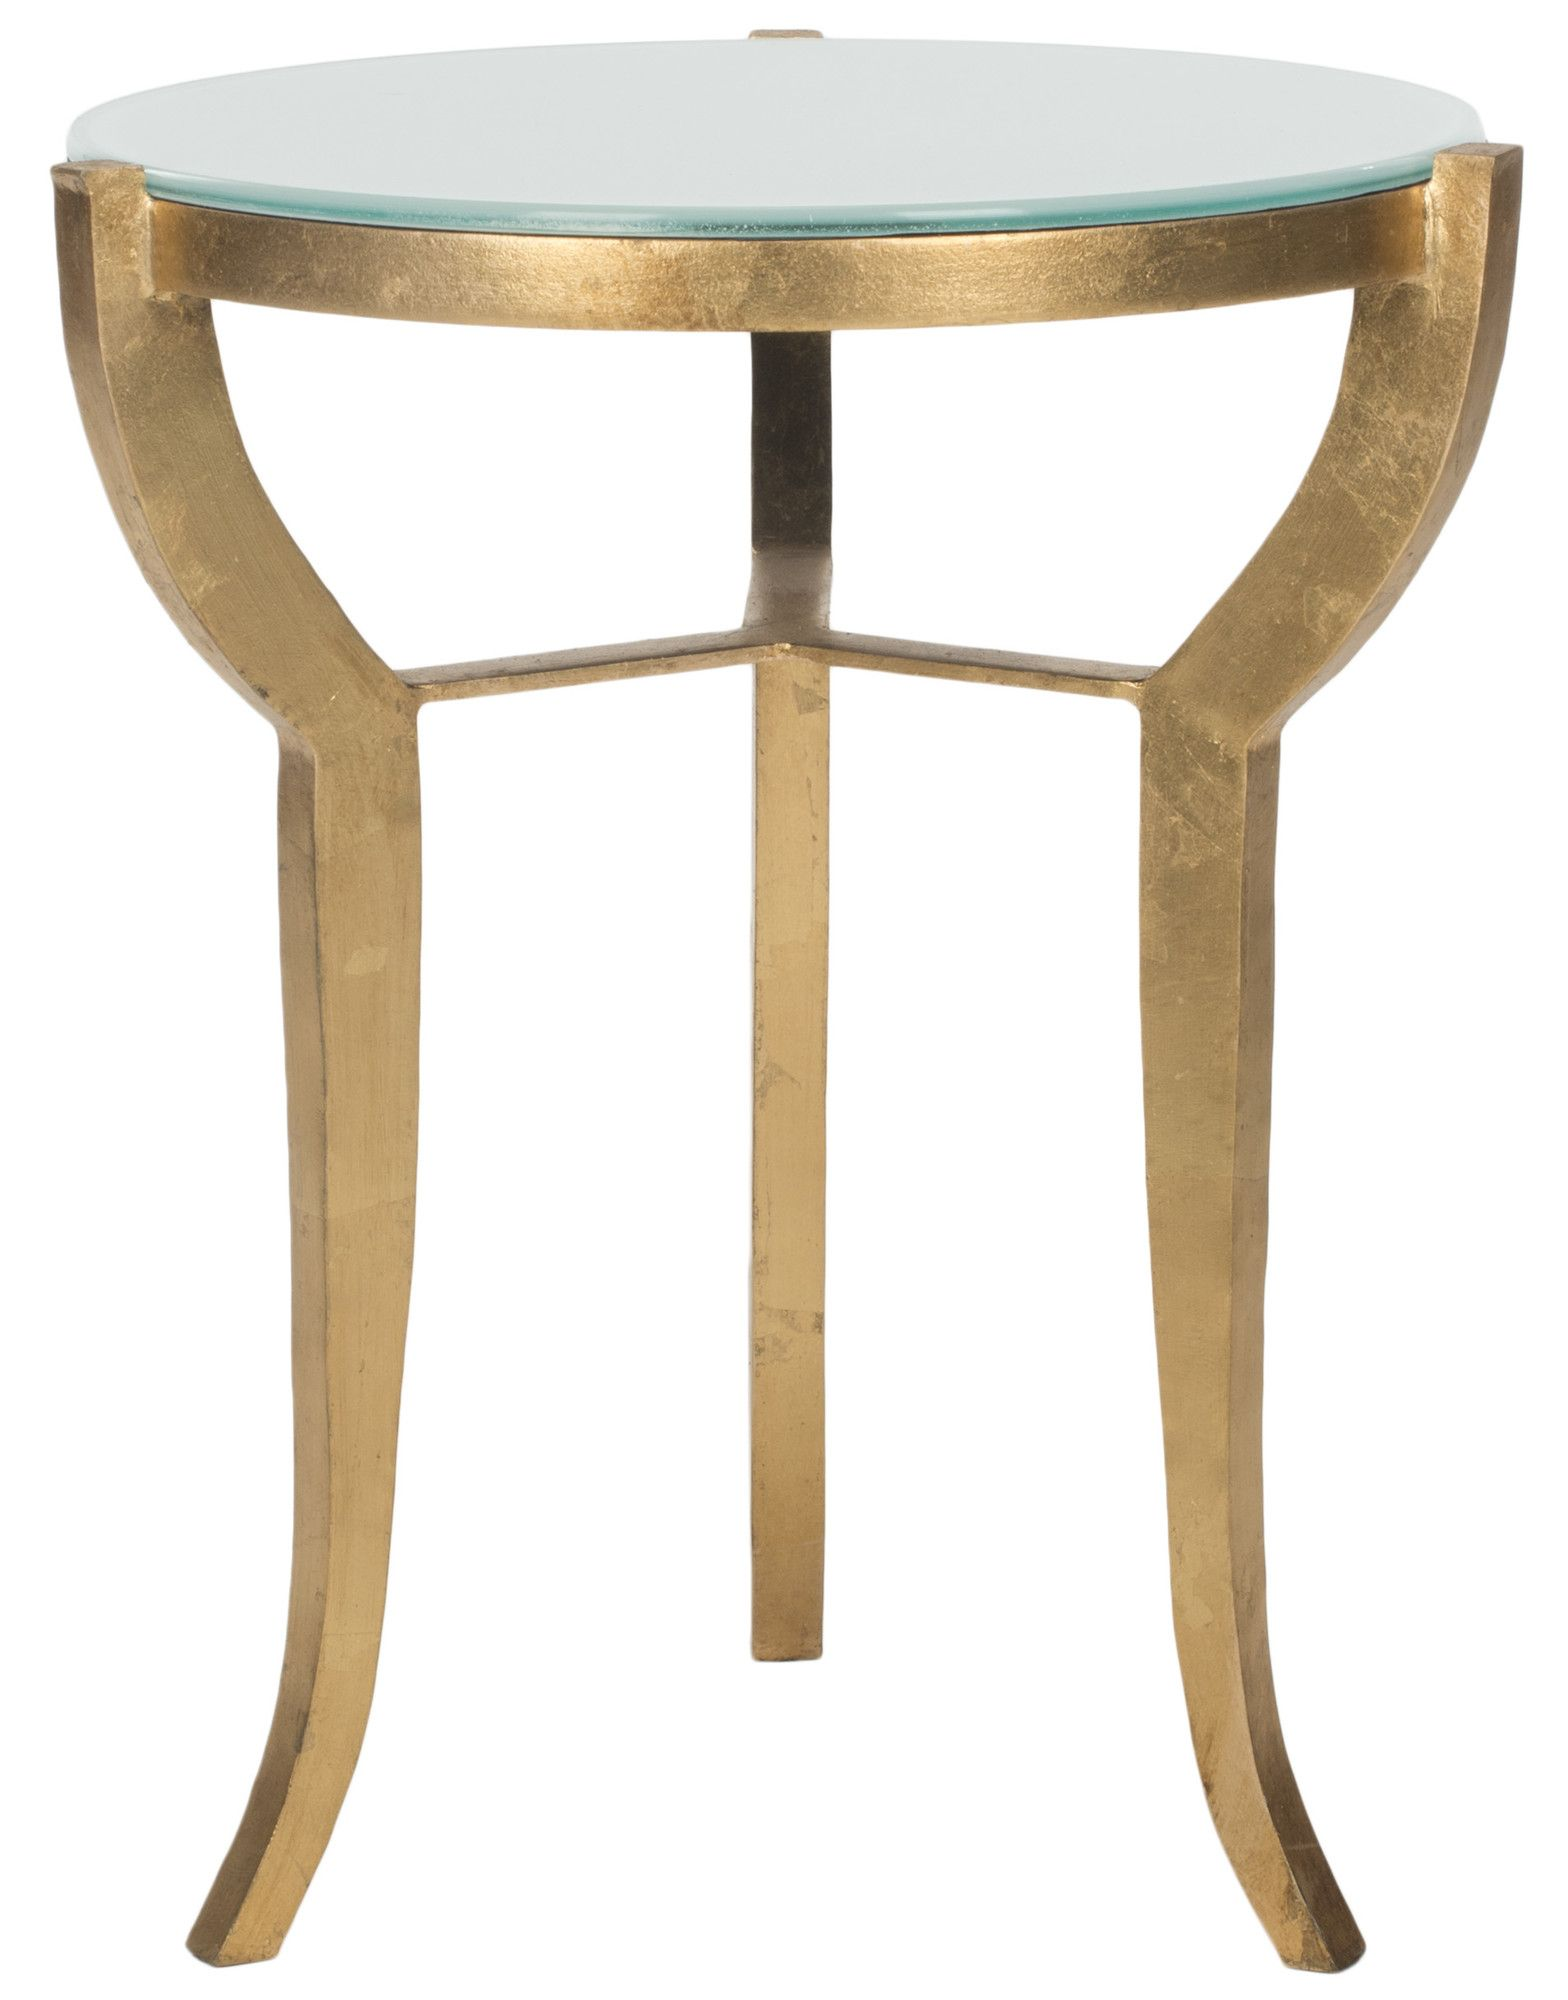 safavieh ormond end table reviews jewelry crate and barrel marilyn accent hammered brass side sasha round small antique skinny square legs pottery barn wheel coffee elephant chair